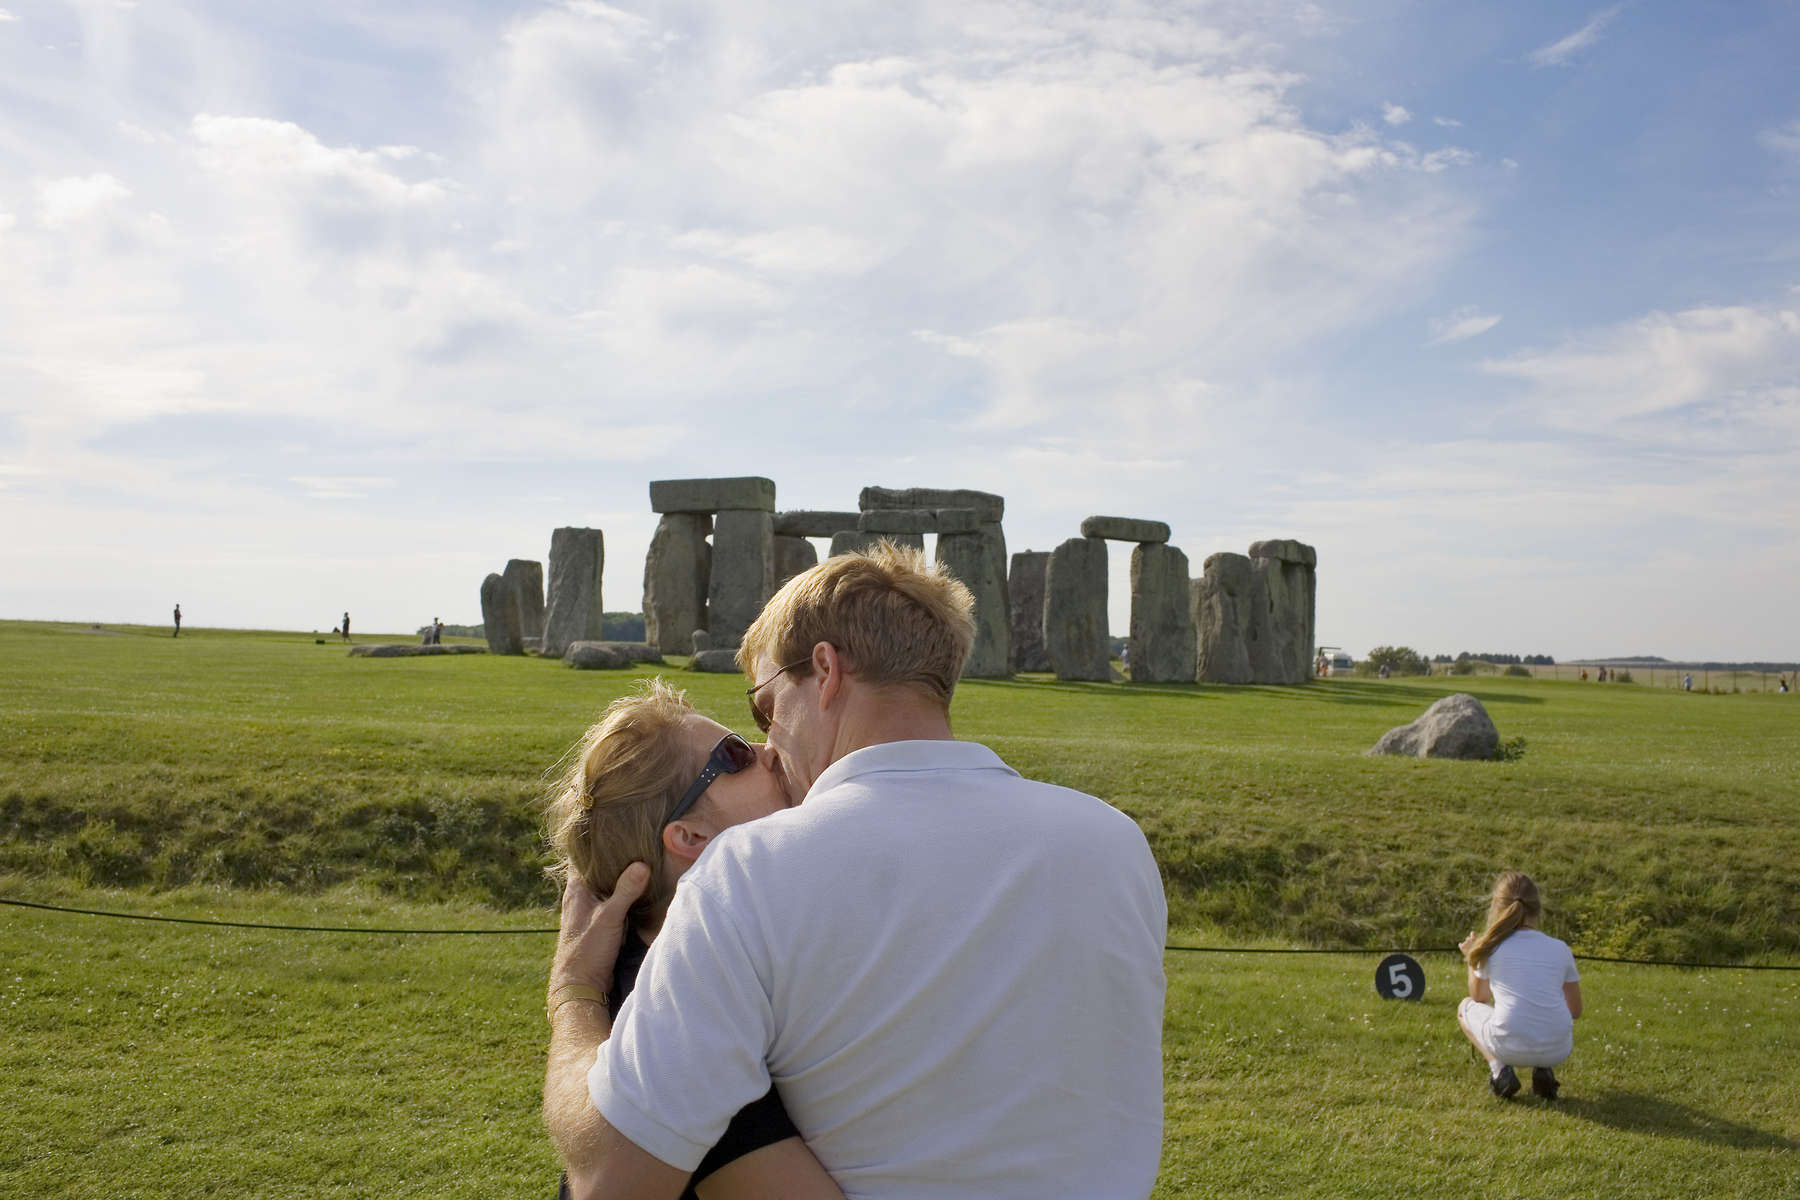 A couple share a passionate kiss in fornt of Stonehenge. Stonehenge is a prehistoric monument located in the English county of Wiltshire. One of the most famous prehistoric sites in the world, Stonehenge is composed of earthworks surrounding a circular setting of large standing stones. Archaeologists believe that the iconic stone monument was erected around 2500 BC.